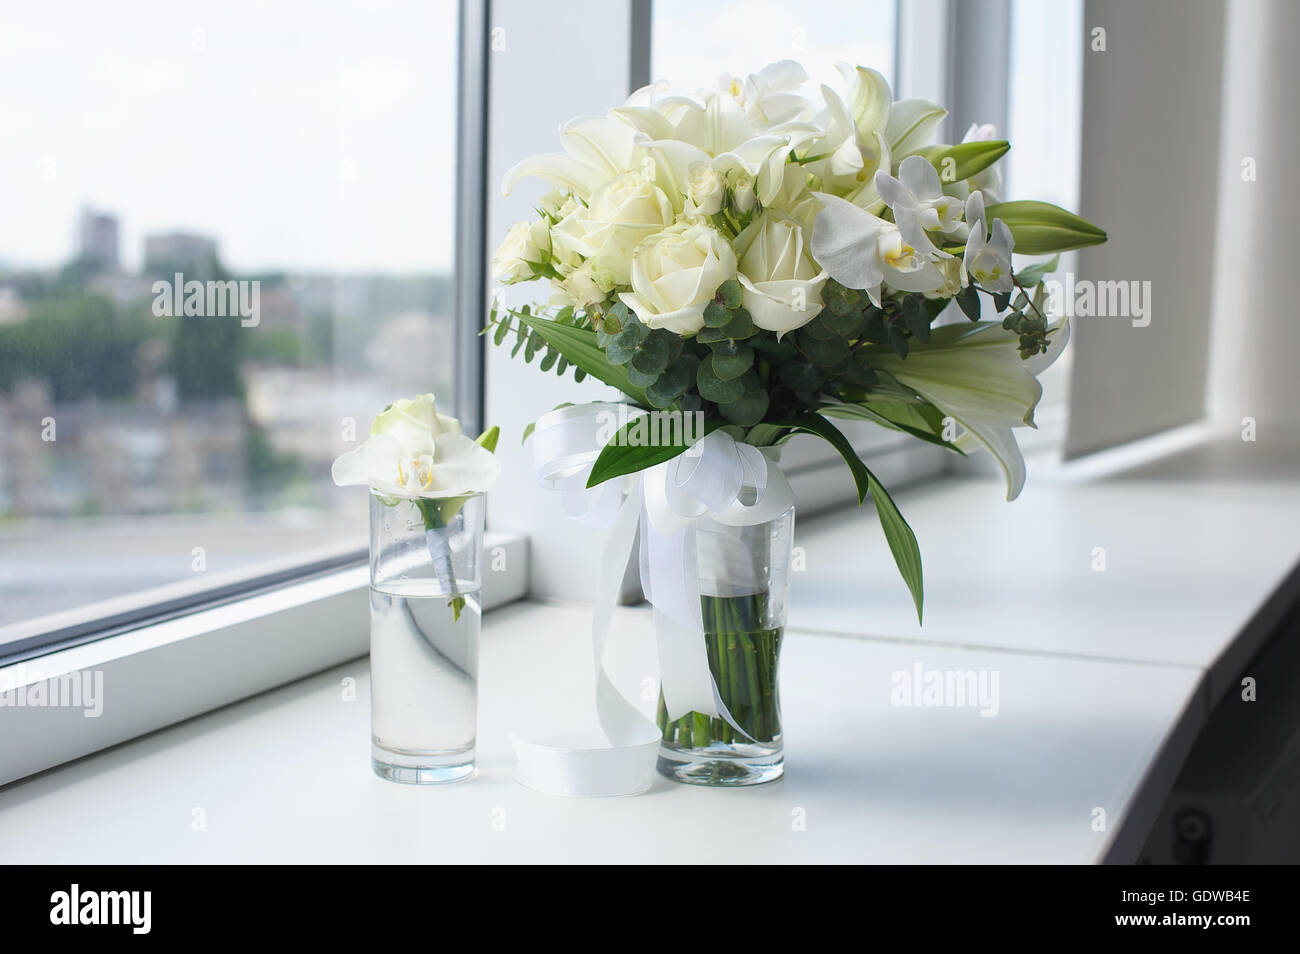 Beautiful Wedding Bouquet In A Glass Vase Flowers On White Stock